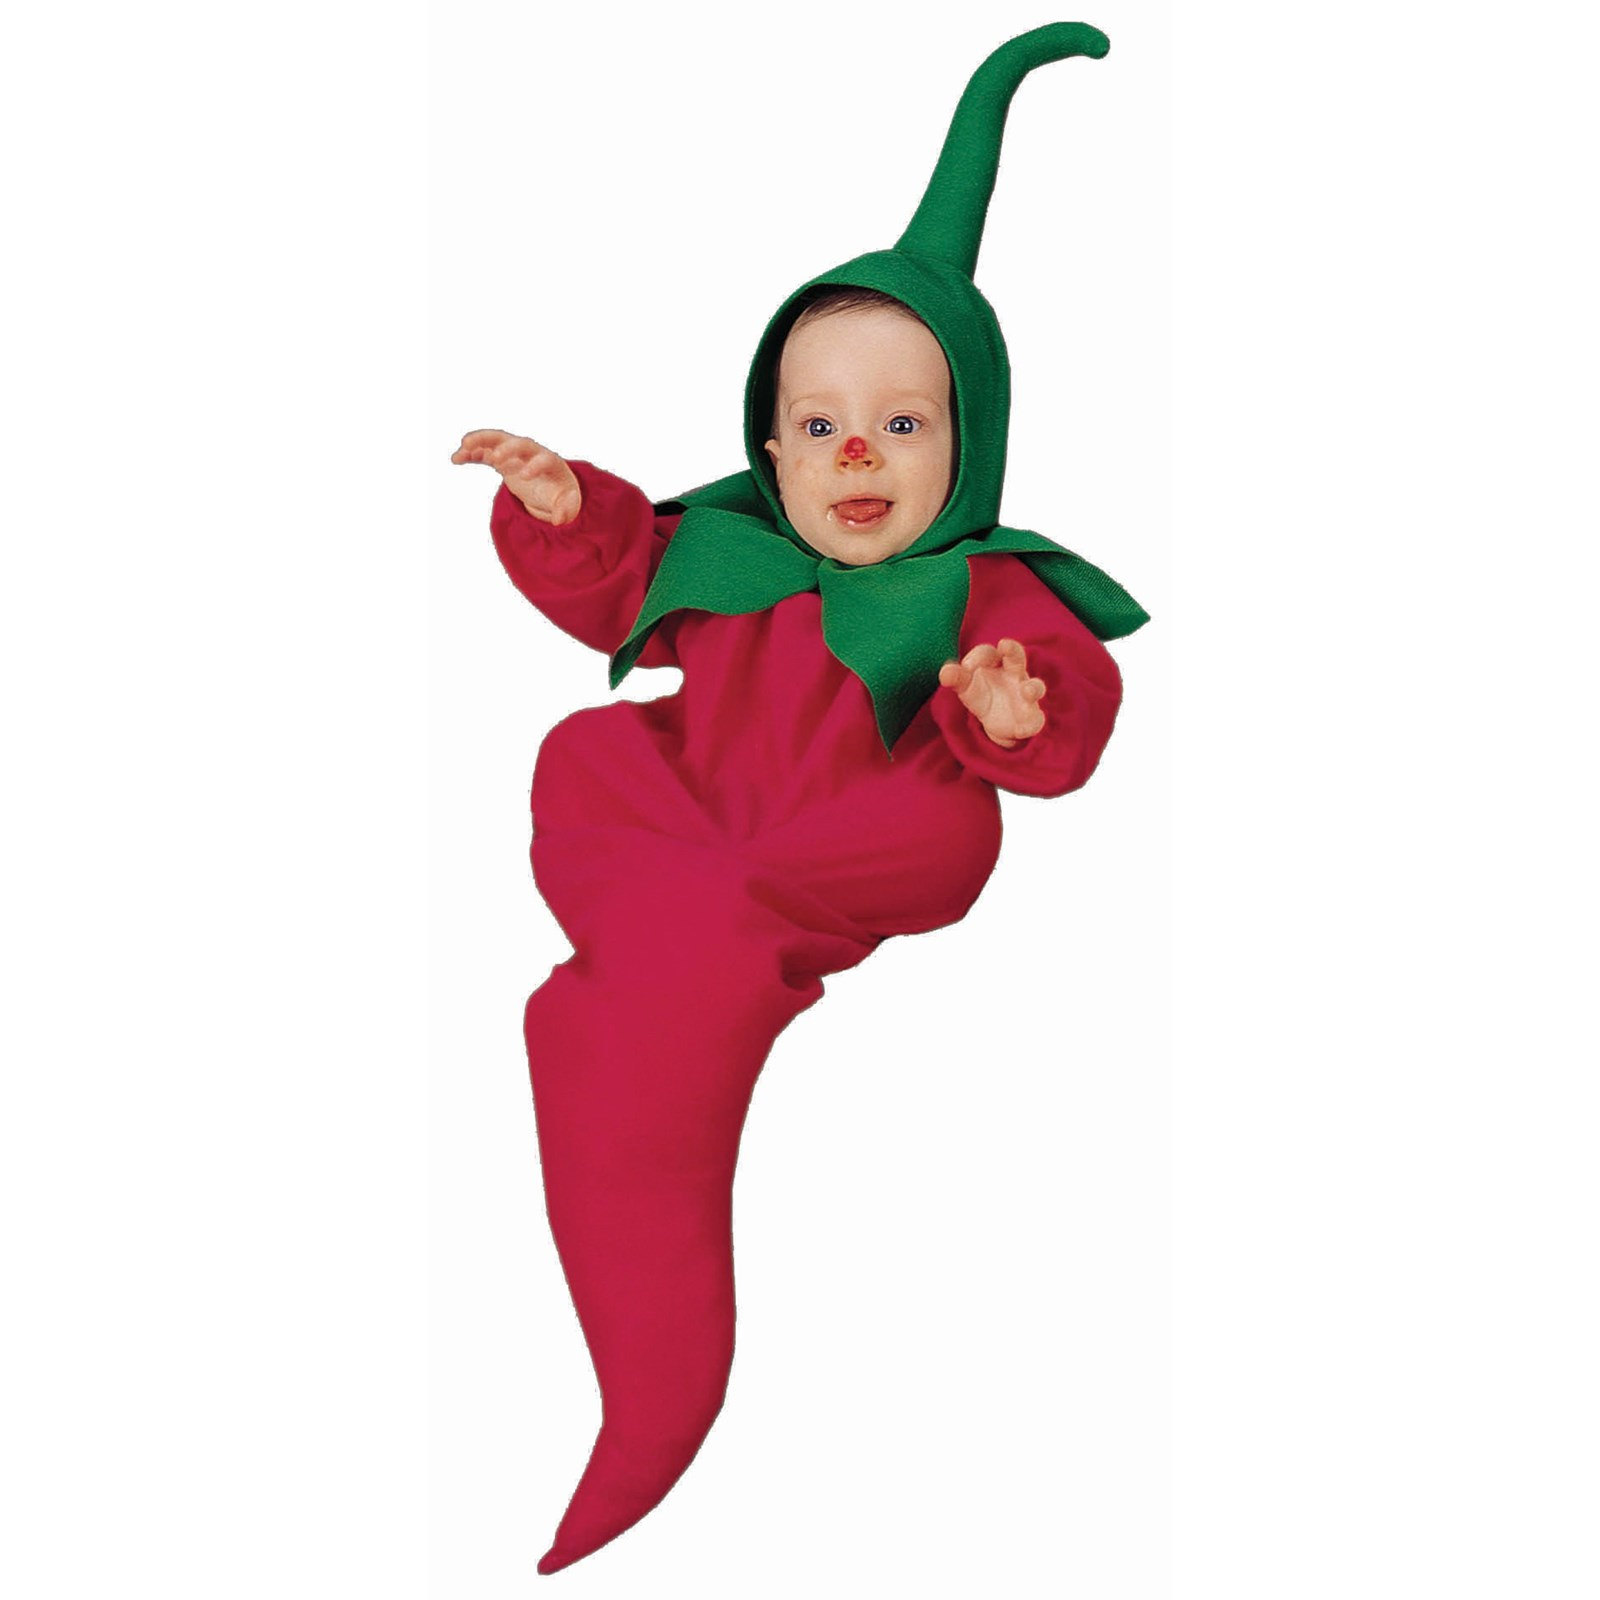 Chili Pepper Bunting Infant Costume | BuyCostumes.com